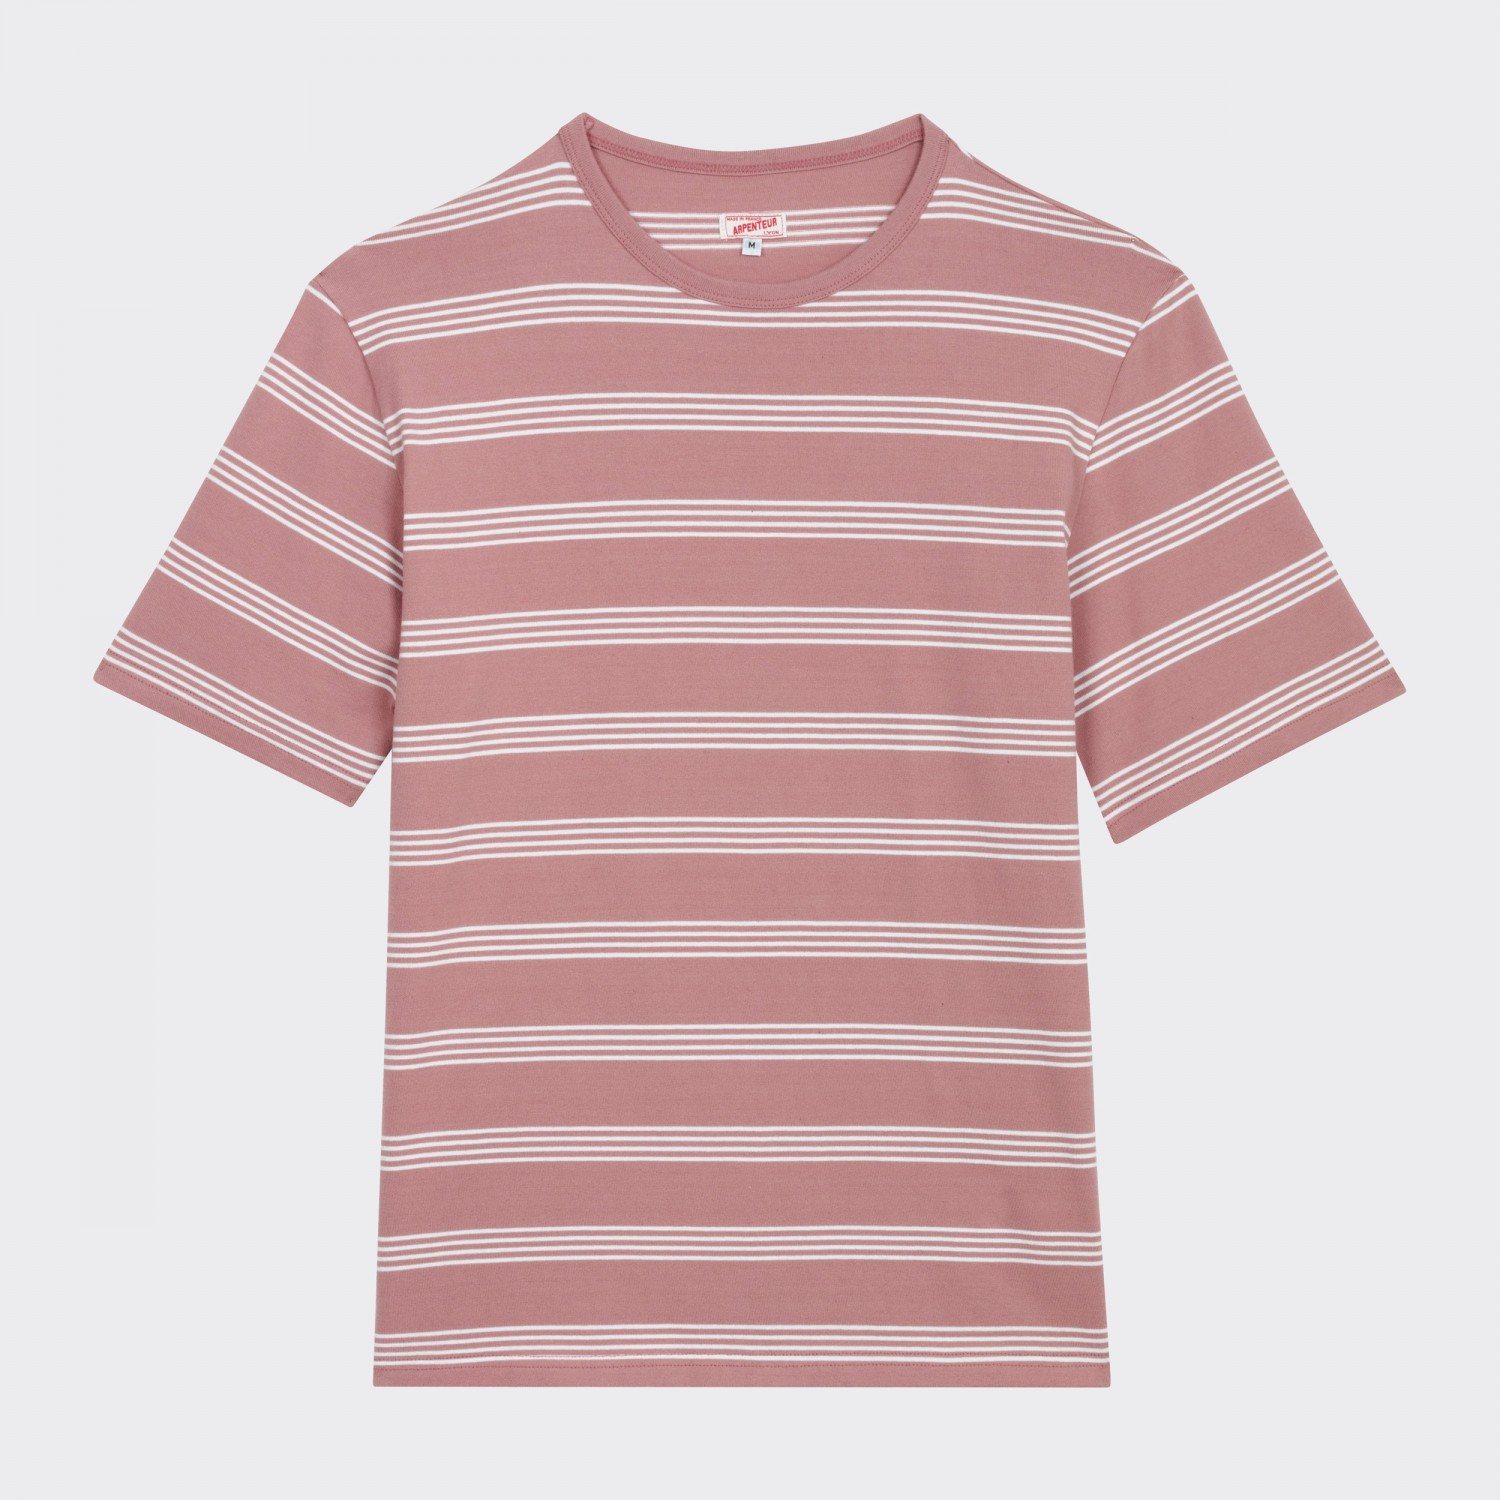 Arpenteur striped cotton t shirt pink white for Thick white cotton t shirt